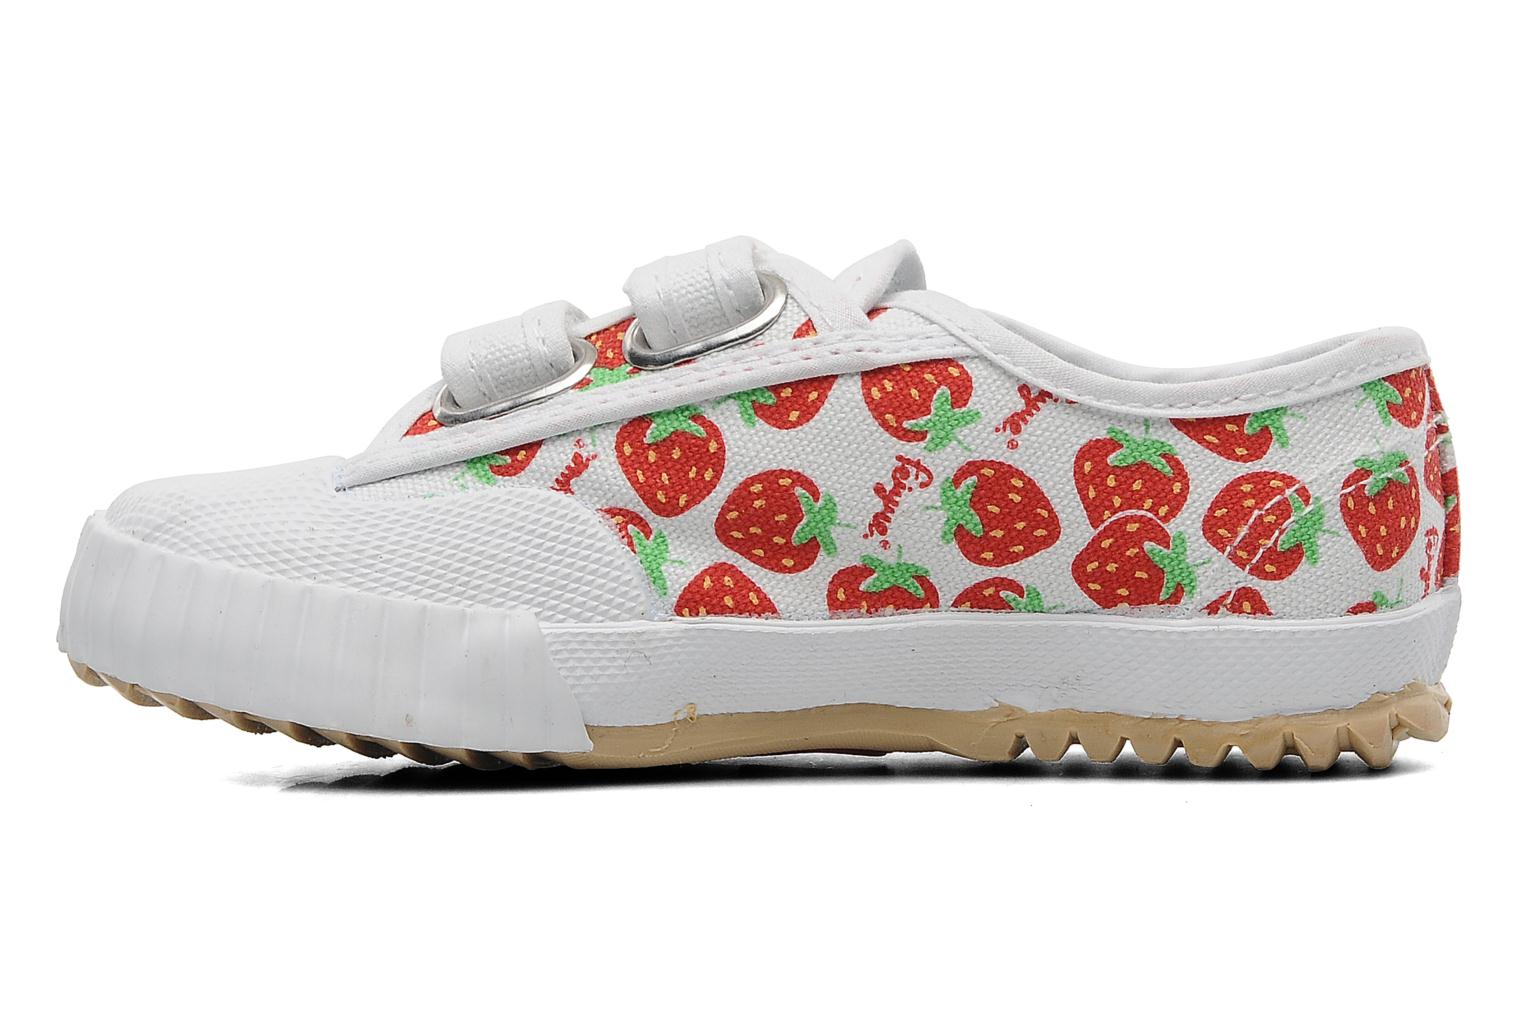 Fe Lo Kid Scratch White/Strawberries